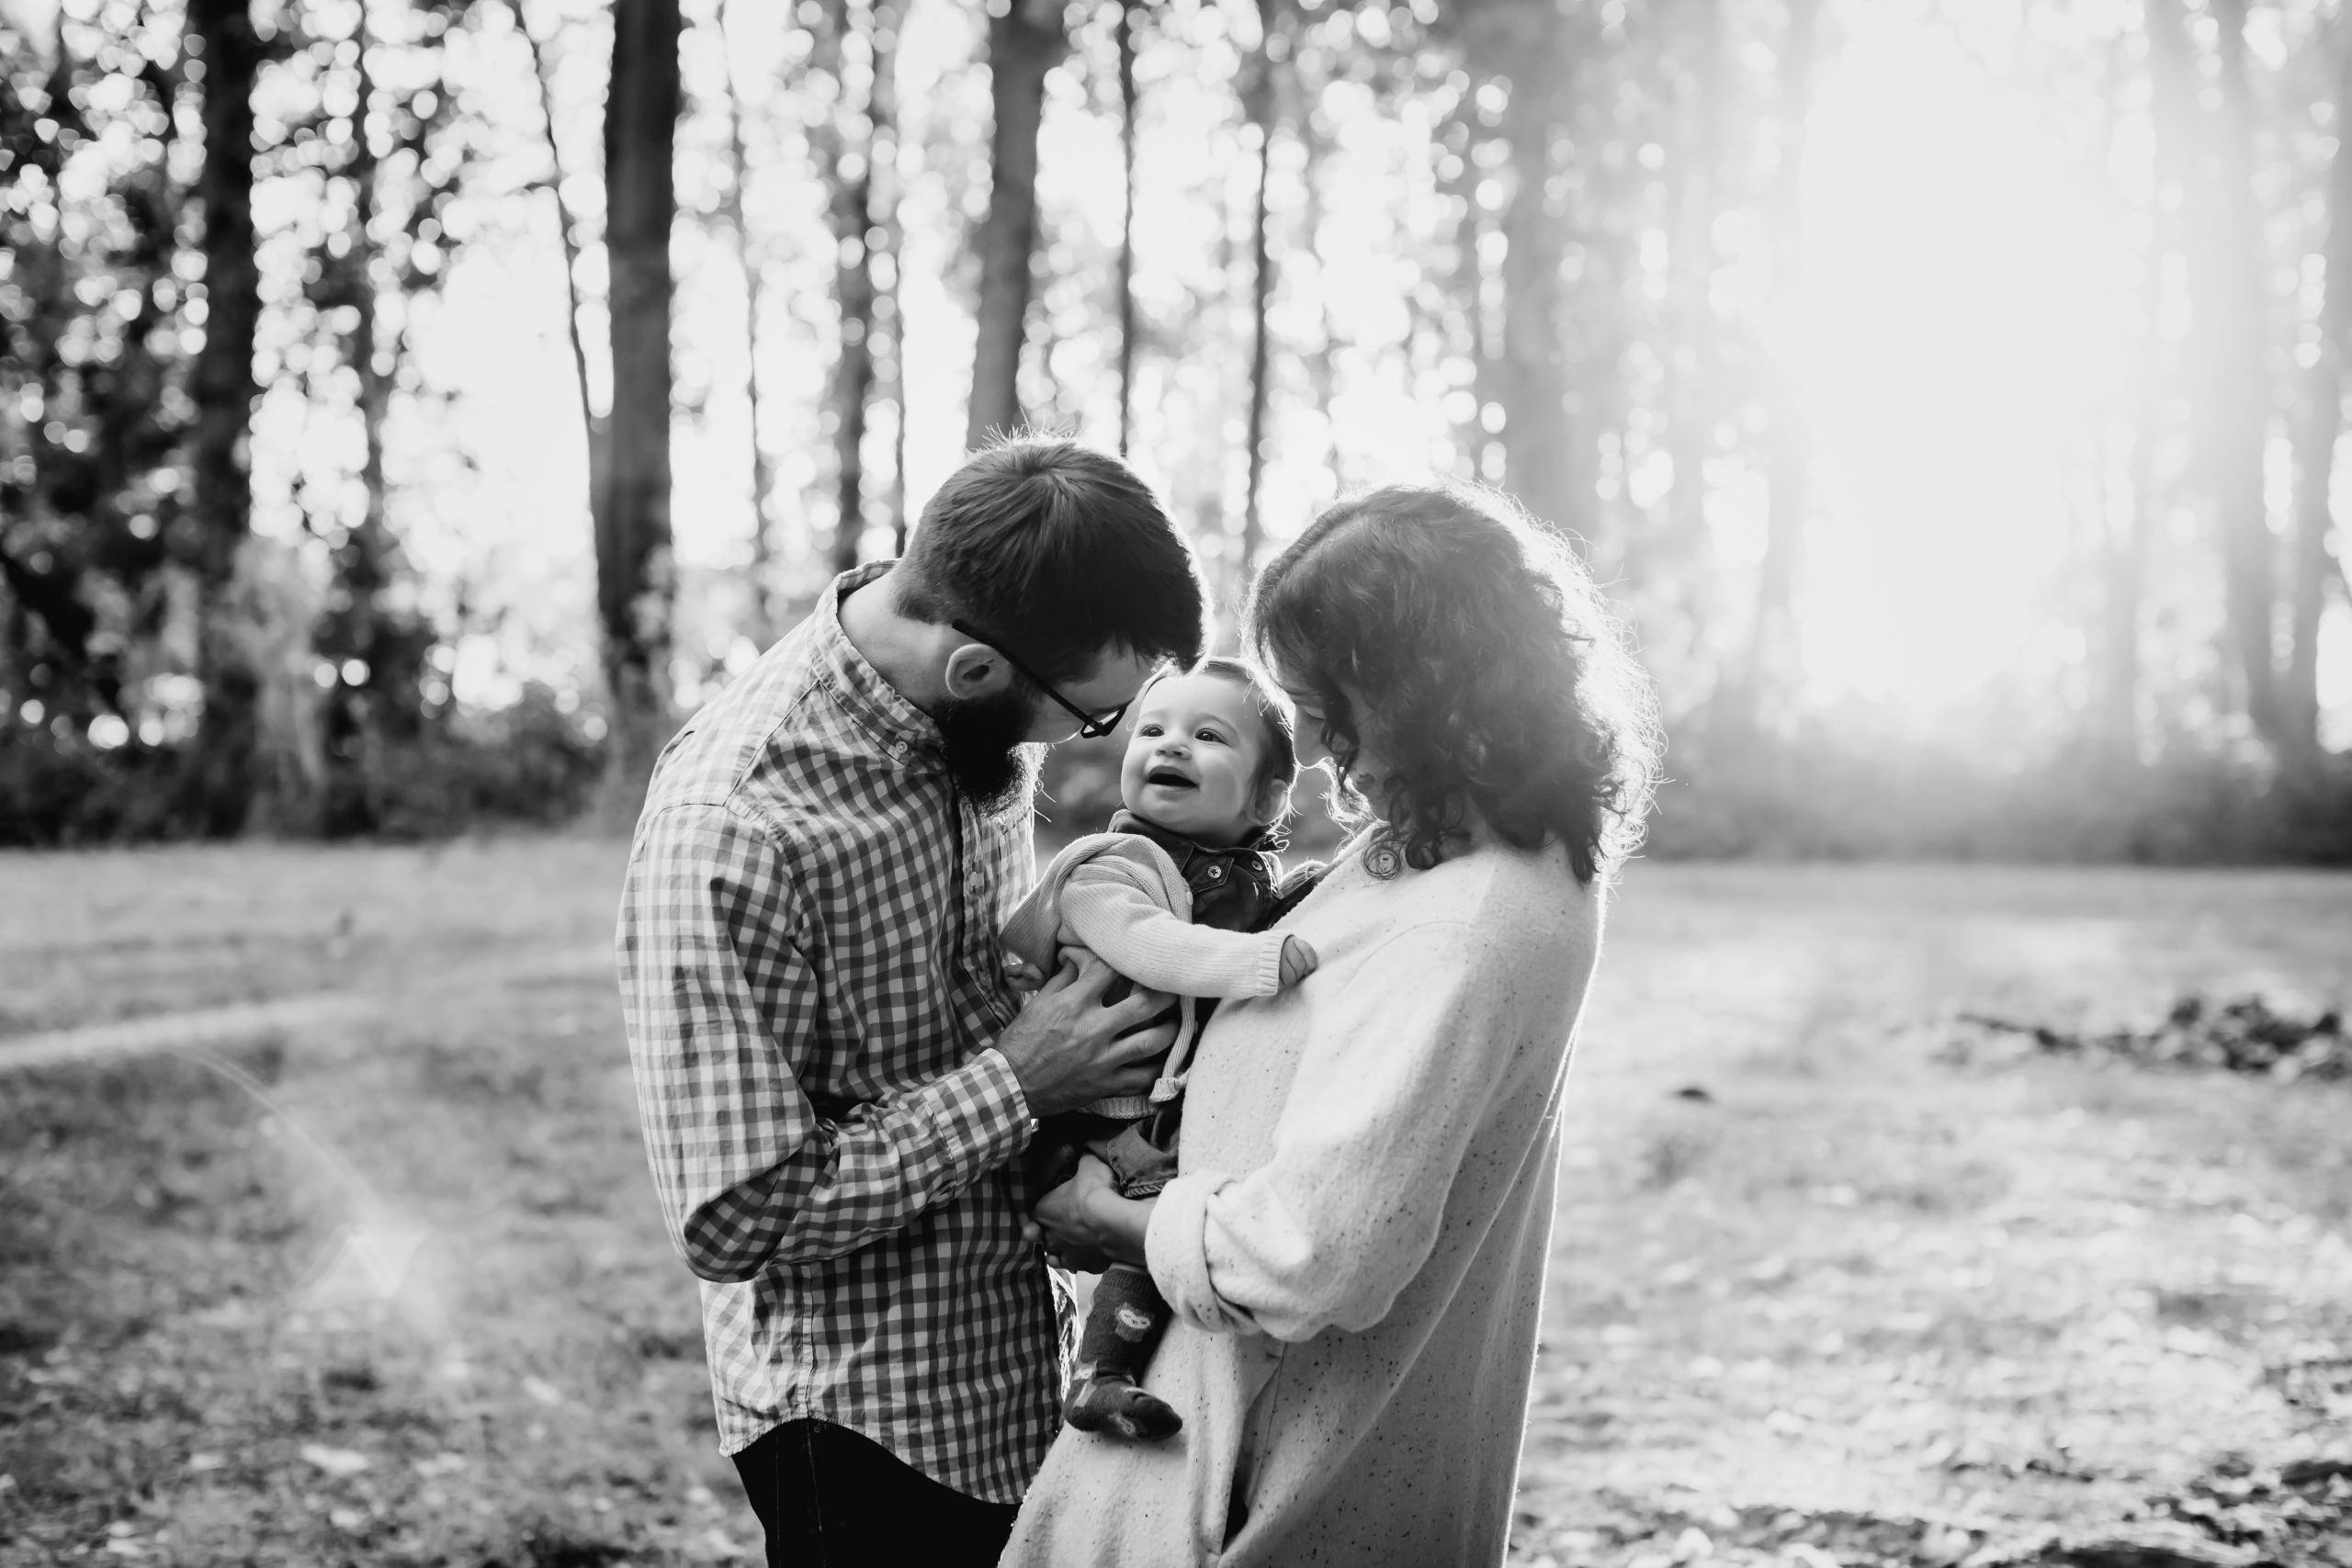 BW photo of young family in park at sunrise